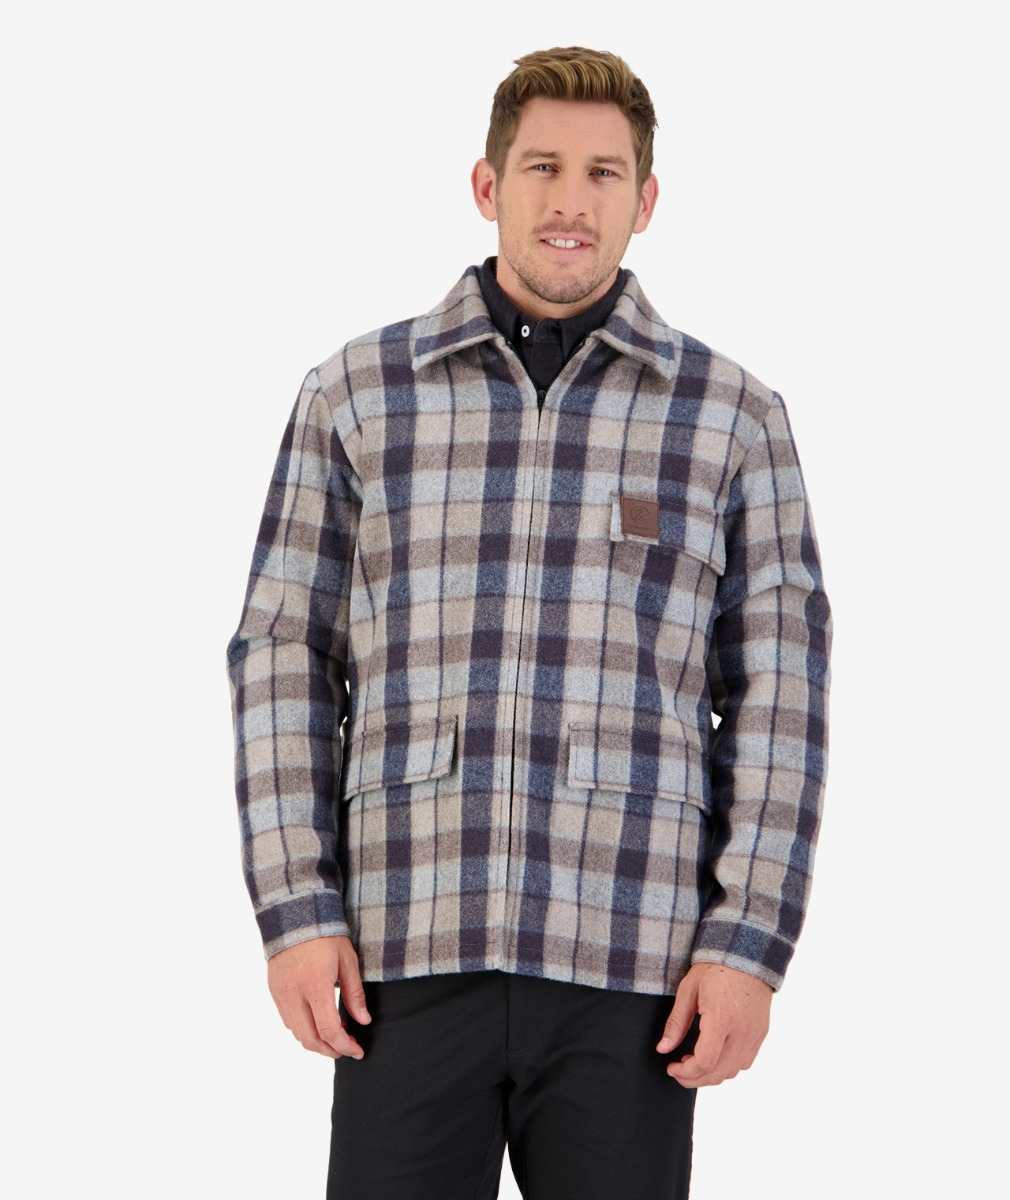 Men's Rover V2 Jacket in Country Check